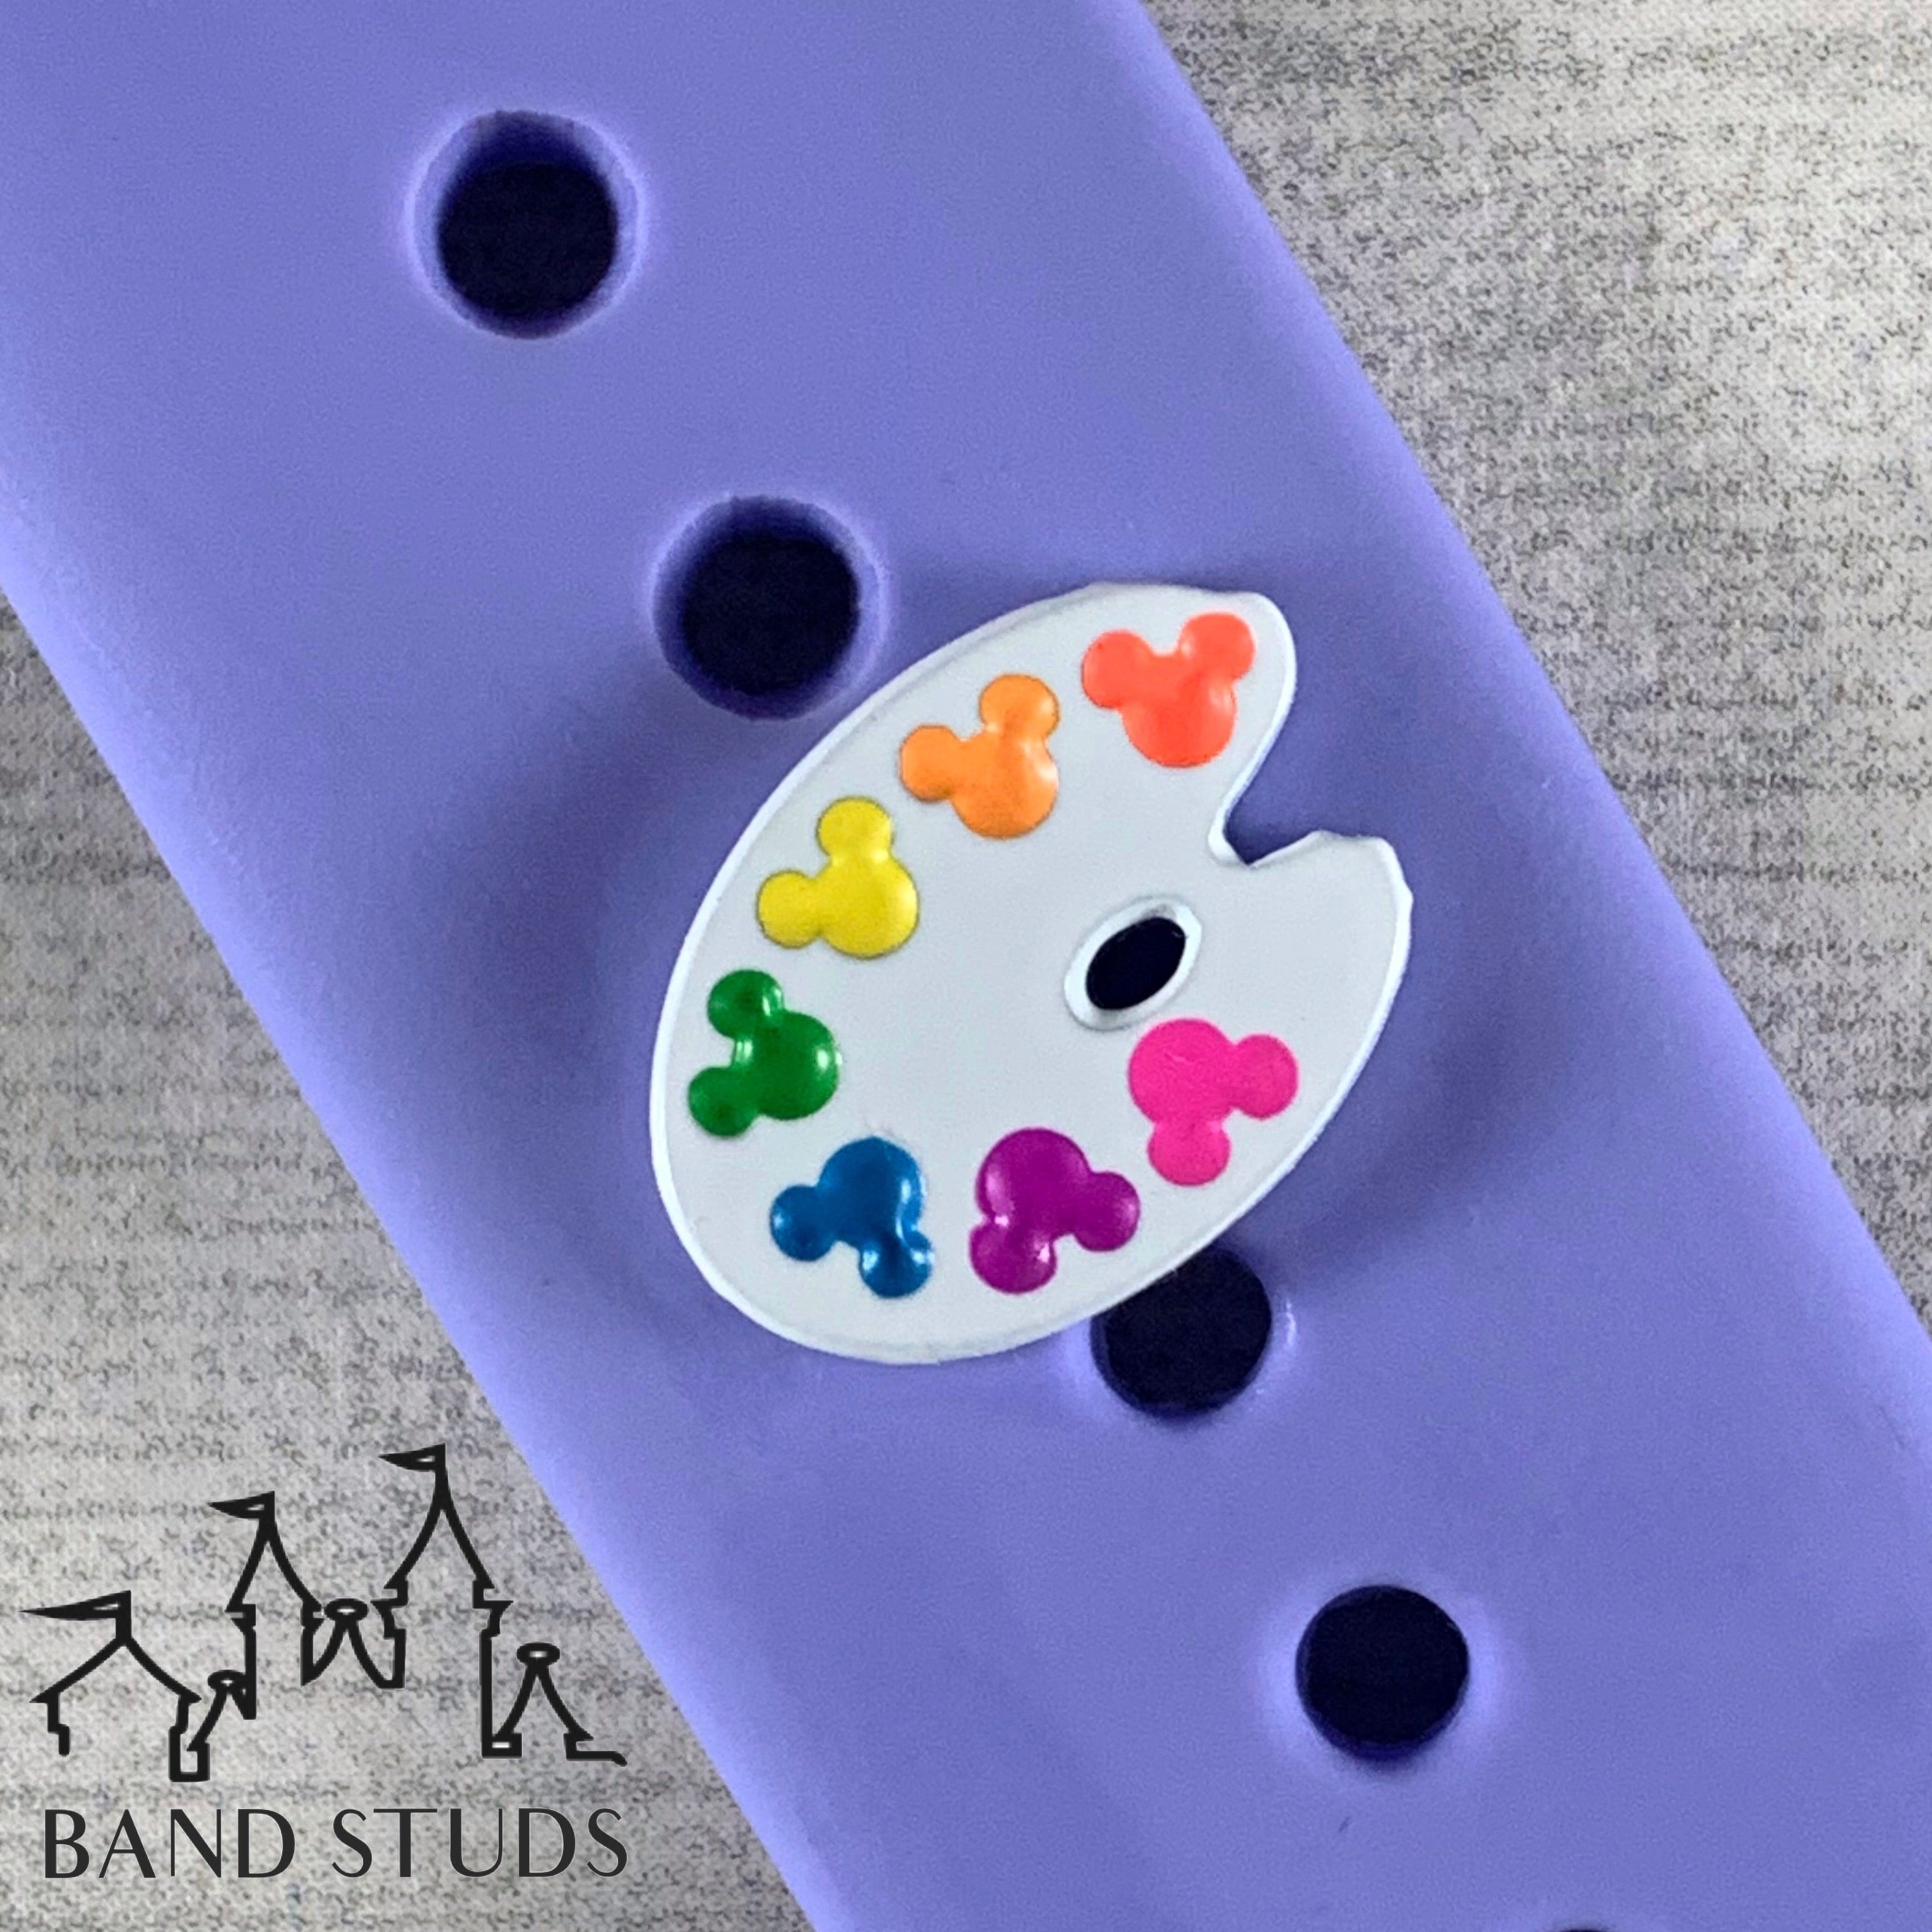 Band Stud - Painter's Palate  READY TO SHIP